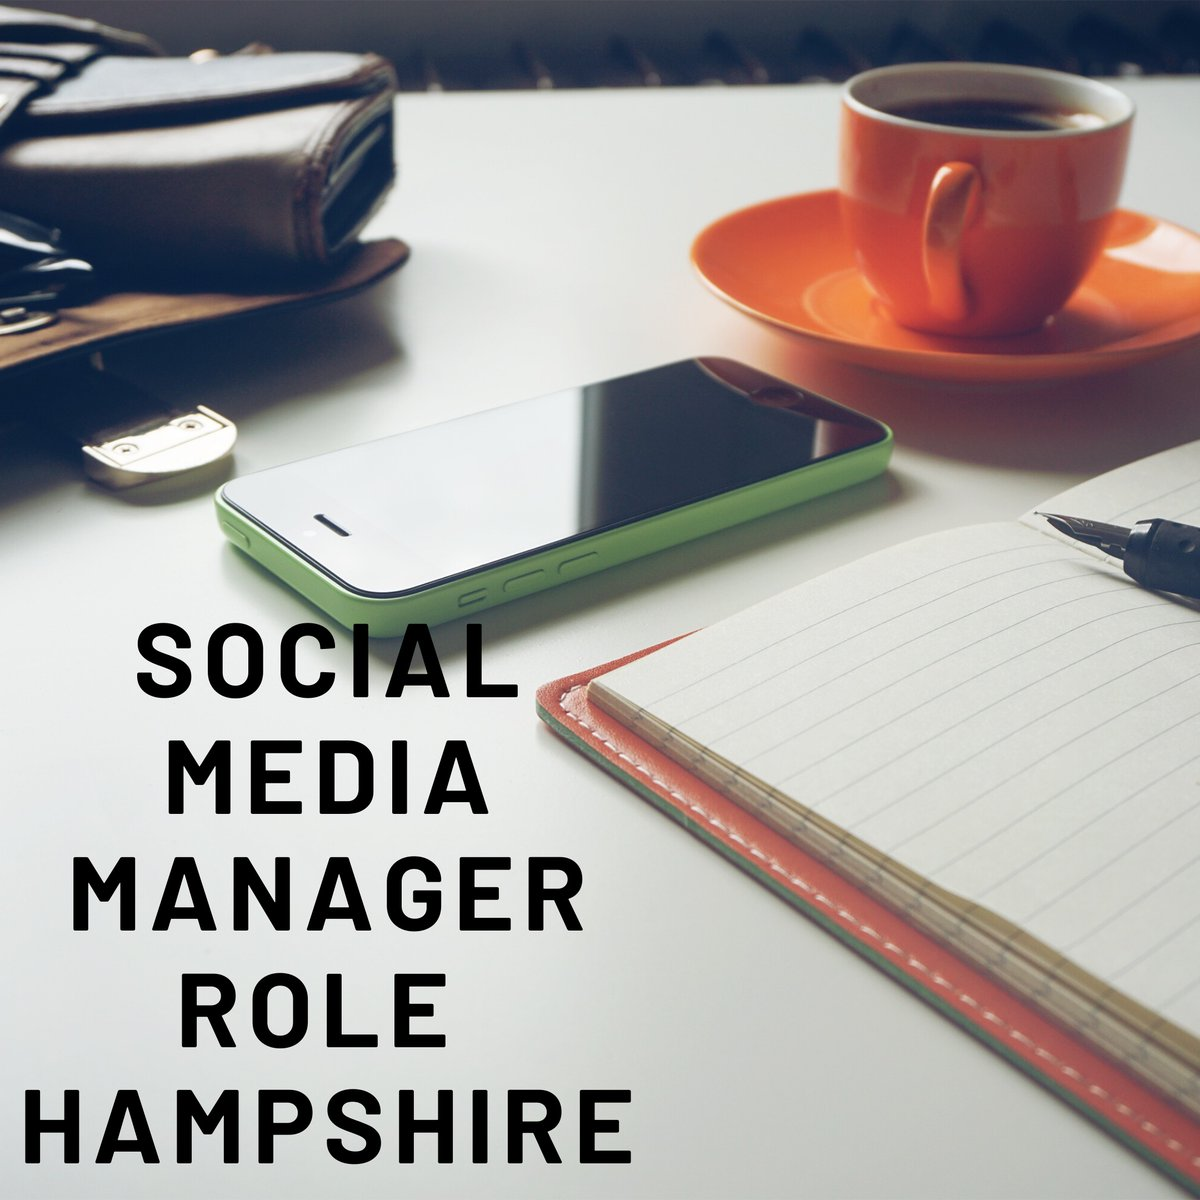 The fix creative is looking for a #social #media #manager to join an amazing toy and games client in Hampshire for more information please email your cv to aimee@thefixcreative.co.uk pic.twitter.com/fNzkNVe4D9